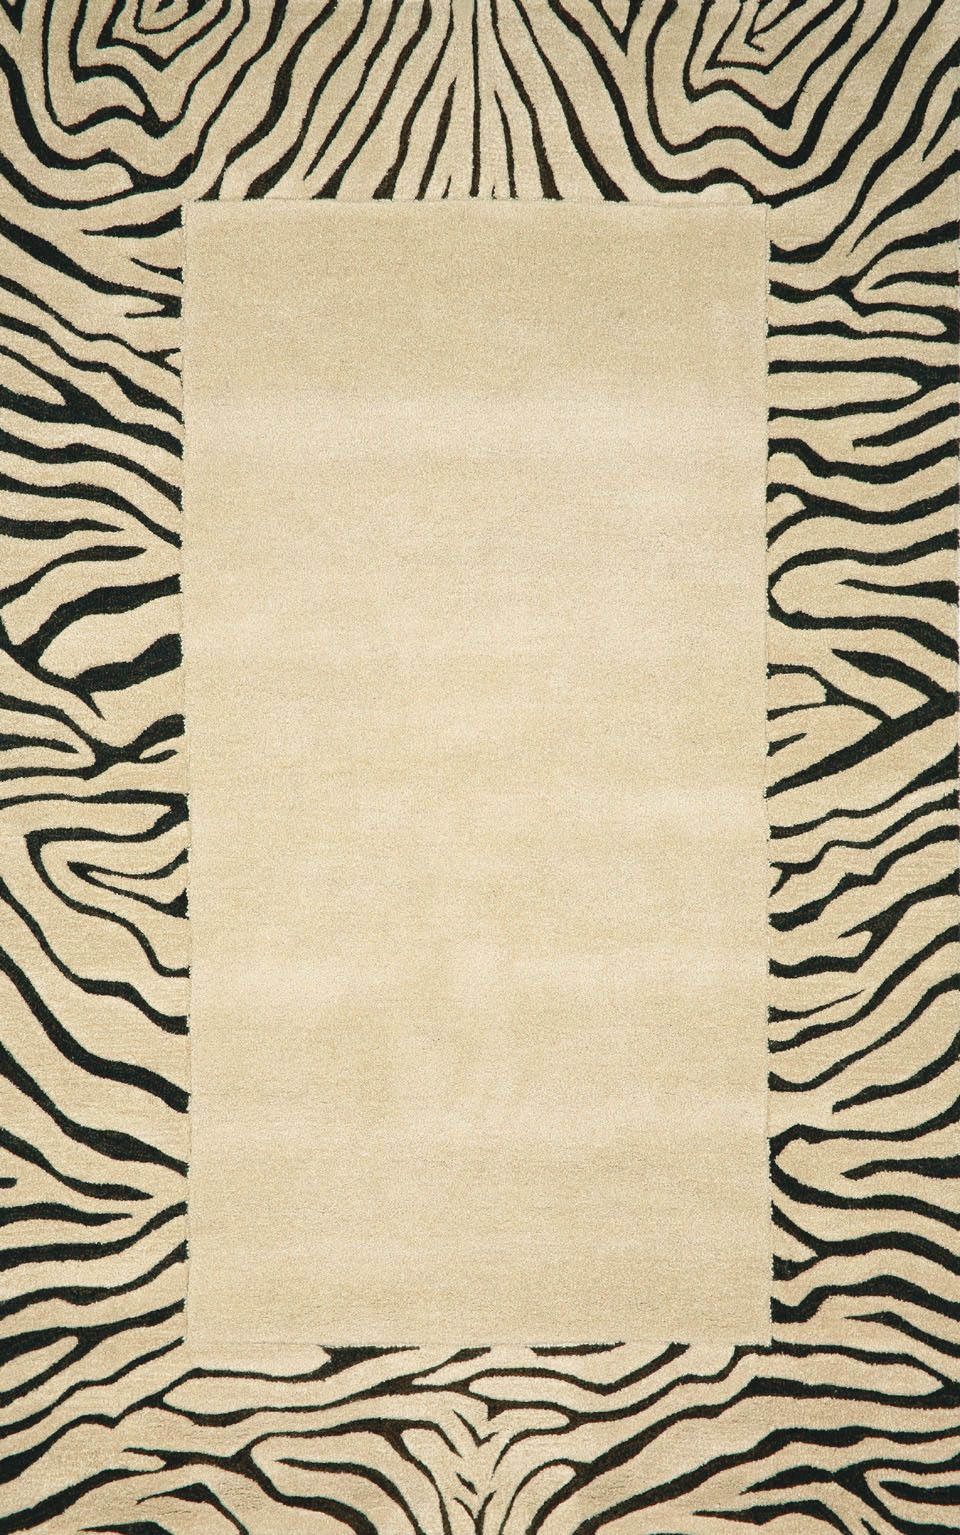 Trans Ocean Seville Neutral Tiger Border Rug Ocean Rug Hand Tufted Rugs Neutral Rugs